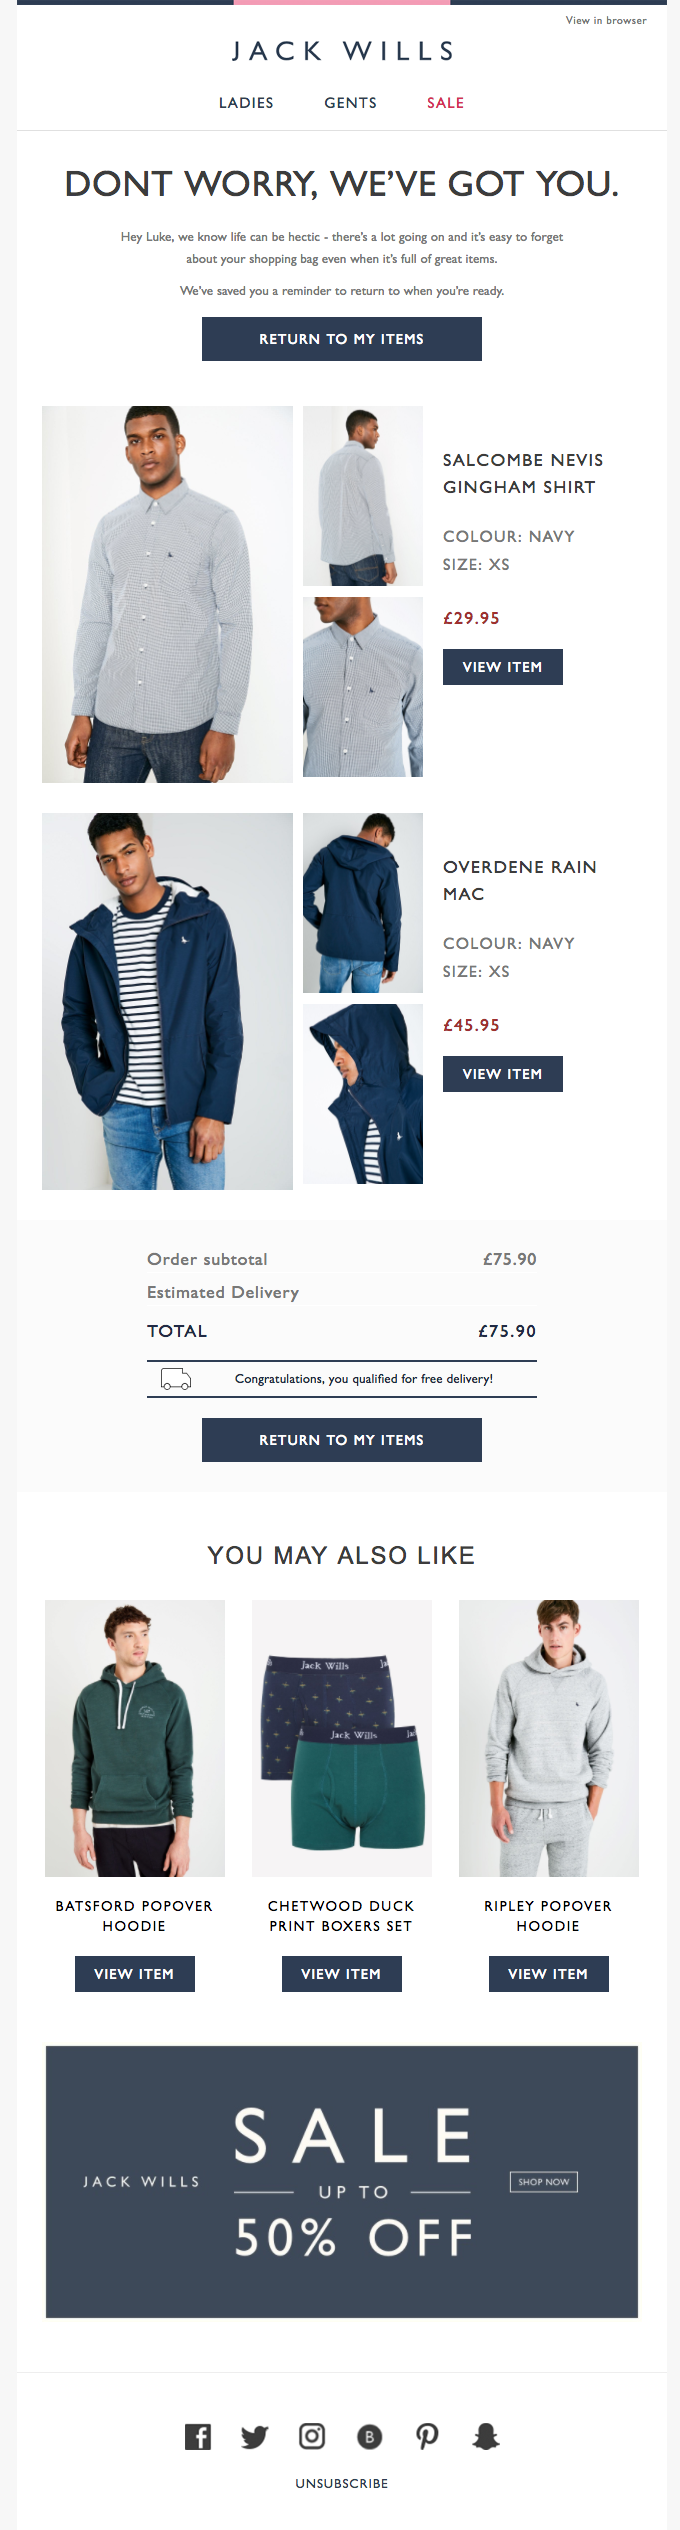 An example of a abandoned shopping cart email template.